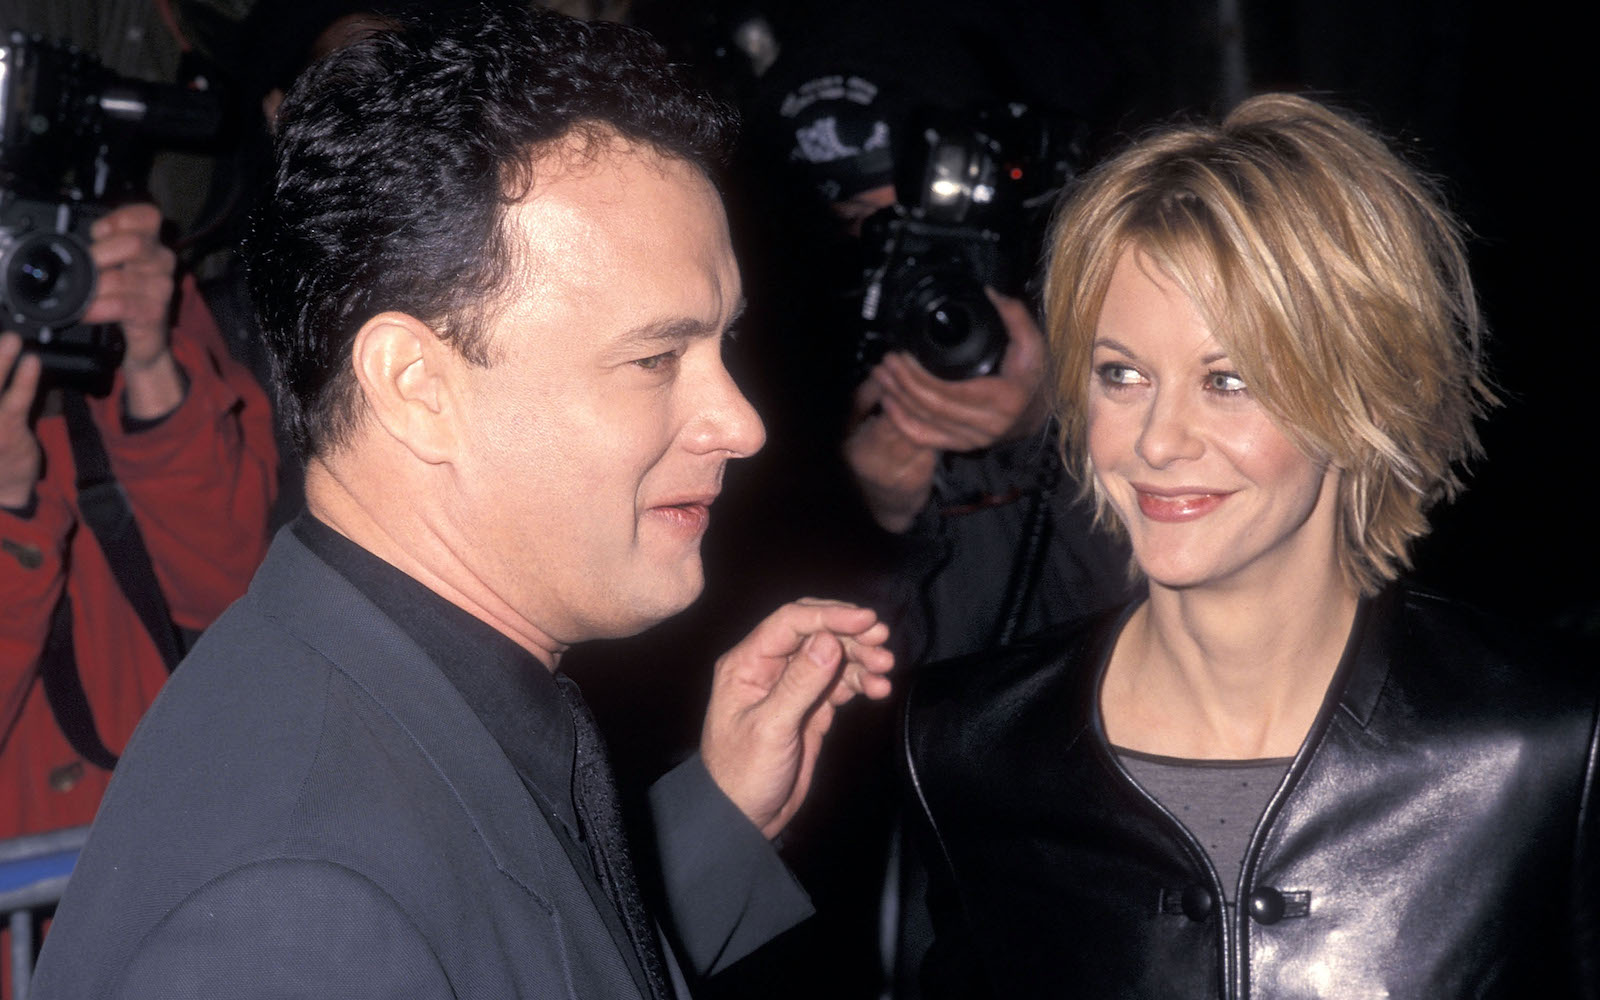 Meg Ryan and Tom Hanks Are Both in Italy and We Want a 'You've Got Mail' Reunion